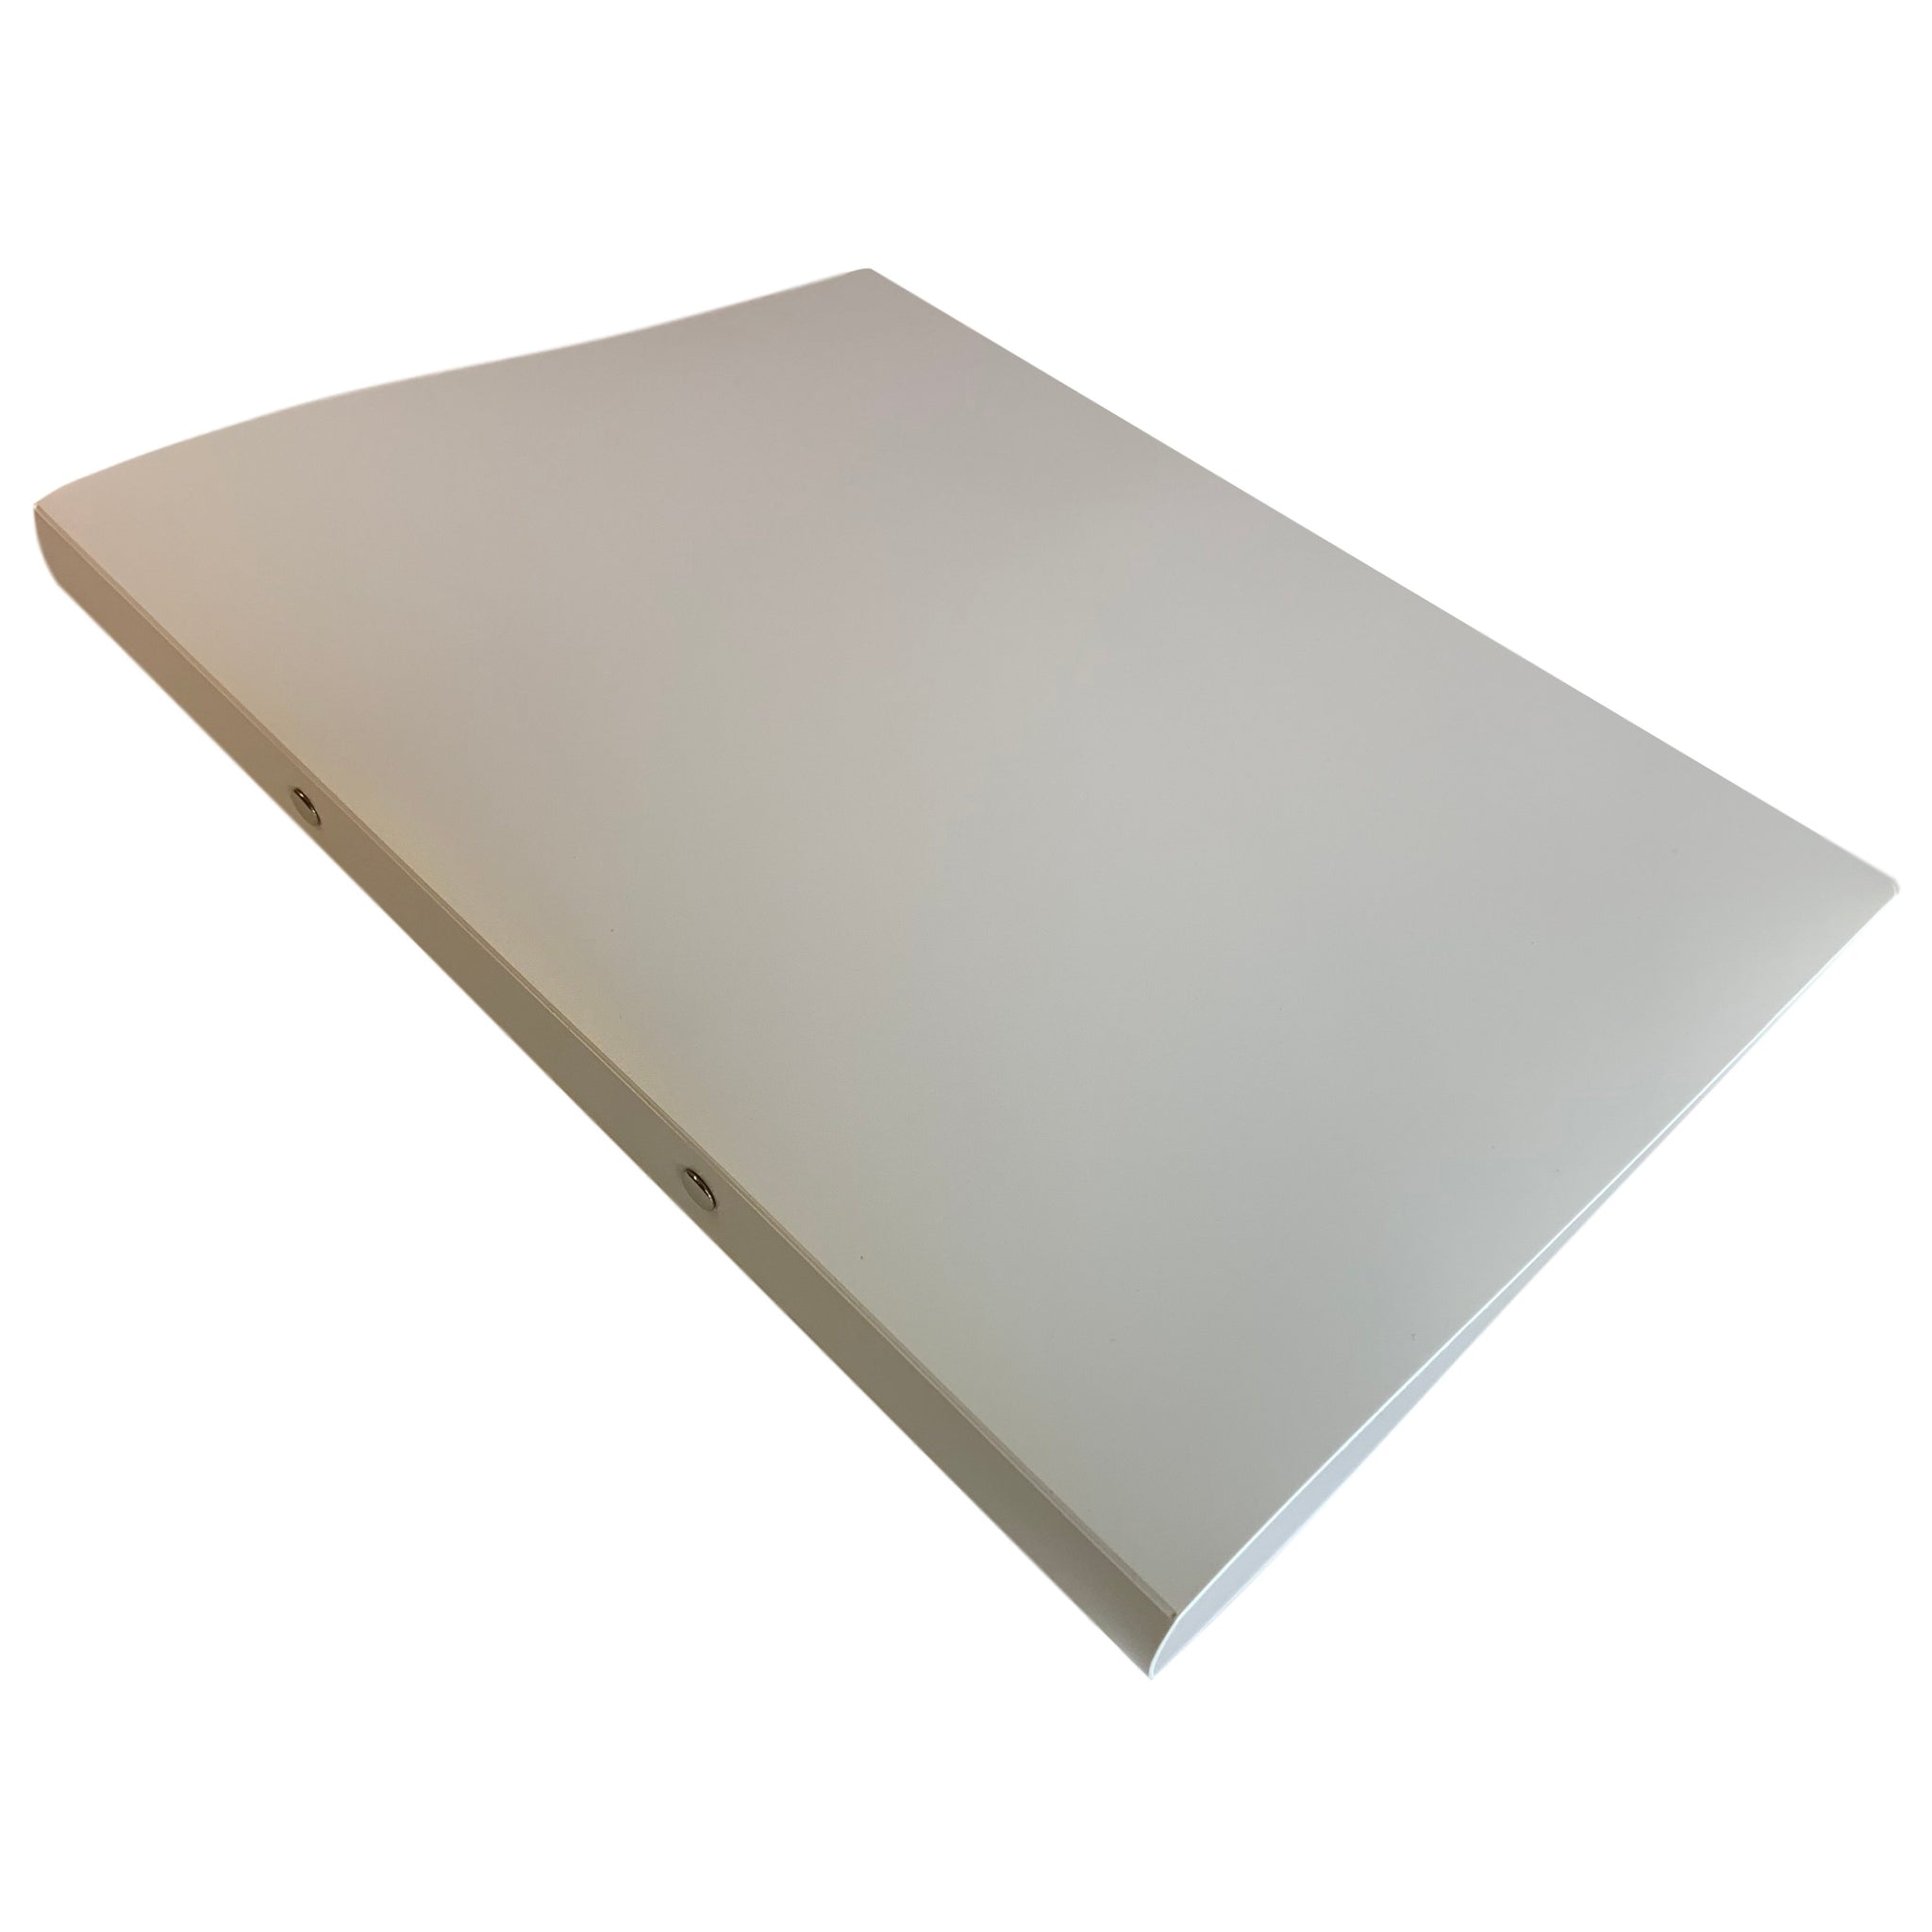 A4 White Ring Binder by Janrax